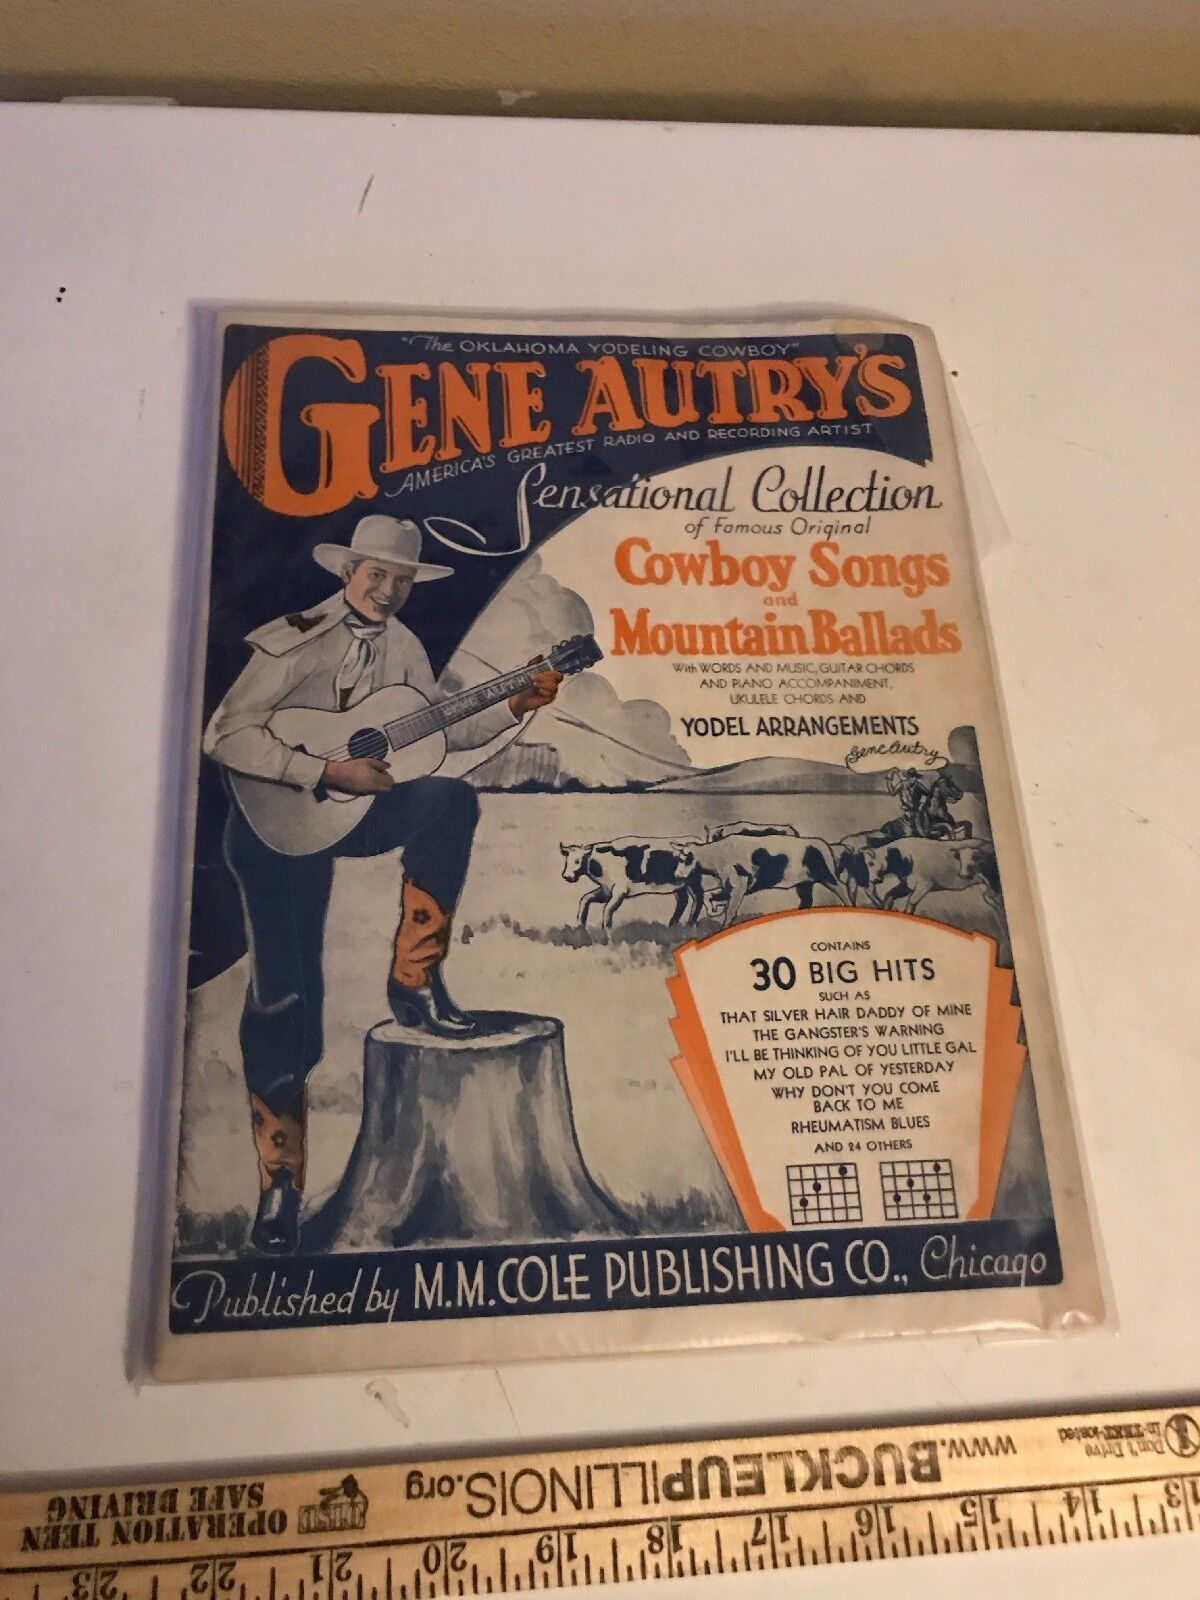 Gene Autry Cowboy Sensational Collection Vintage1932 Sheet Music Book Very Clean